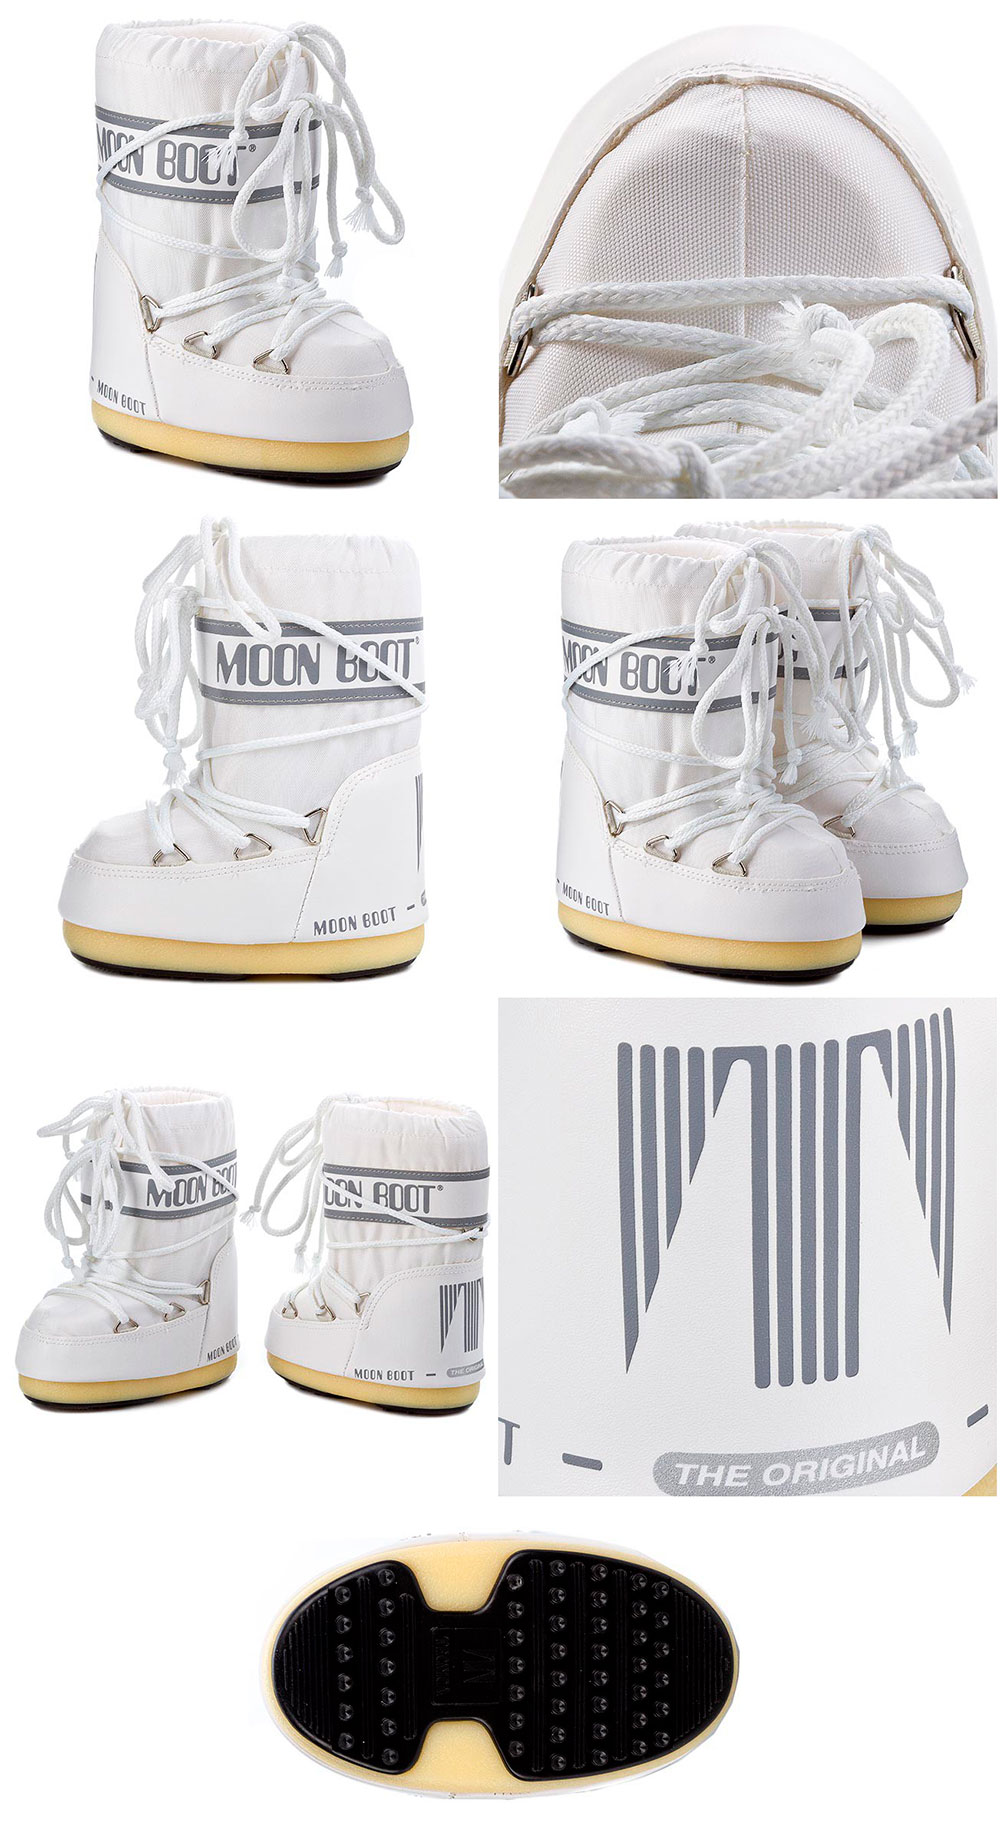 http://www.moonboot.net.ua/images/upload/white_moonboot.net.ua_nylon_kids.jpg